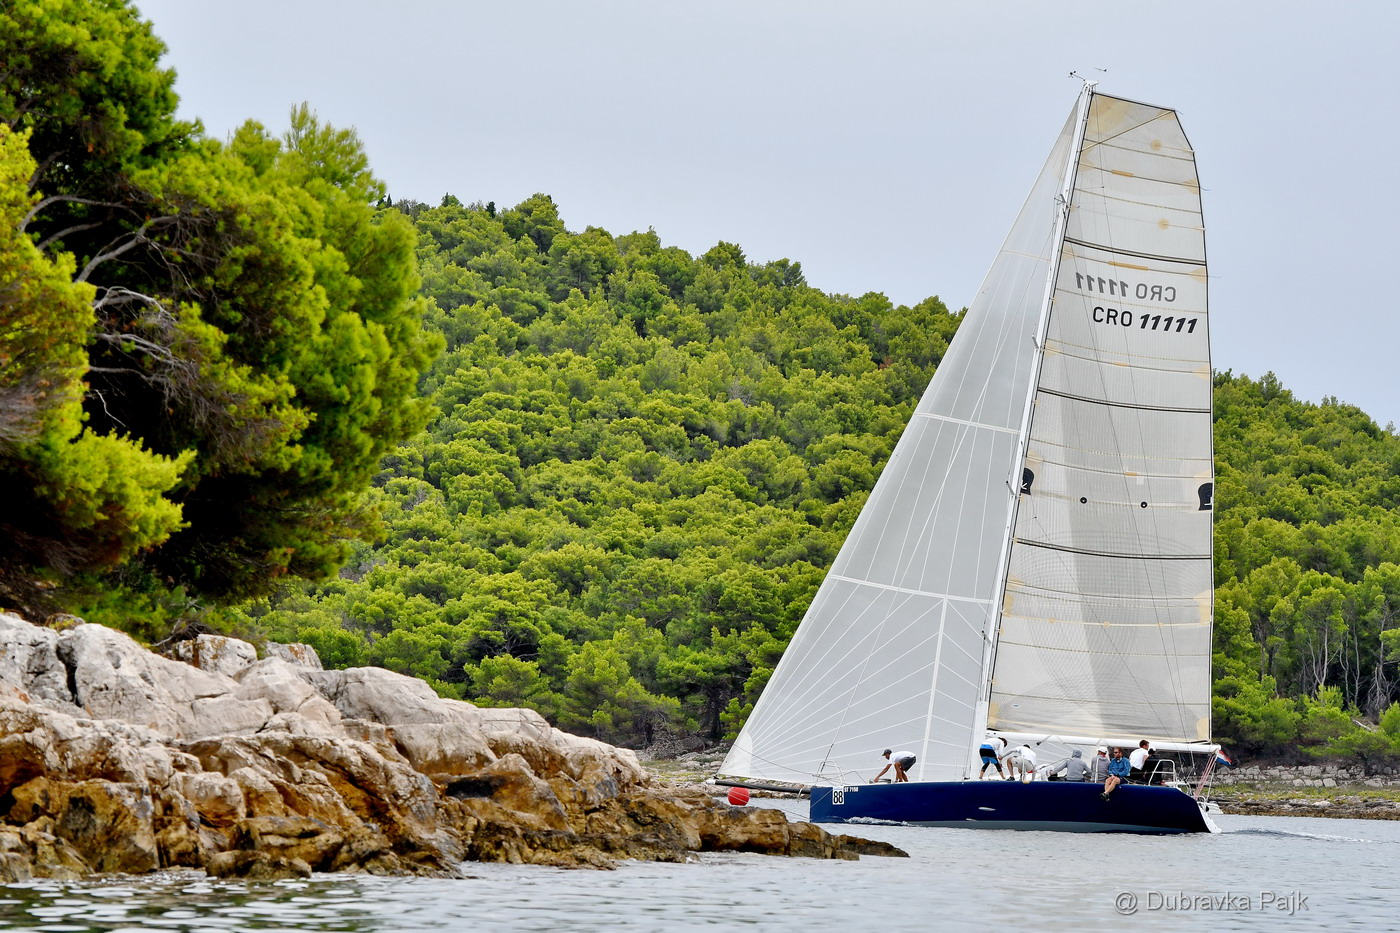 MRDUJSKA REGATTA, SPLIT, MRDUJA, OCTOBER 2019